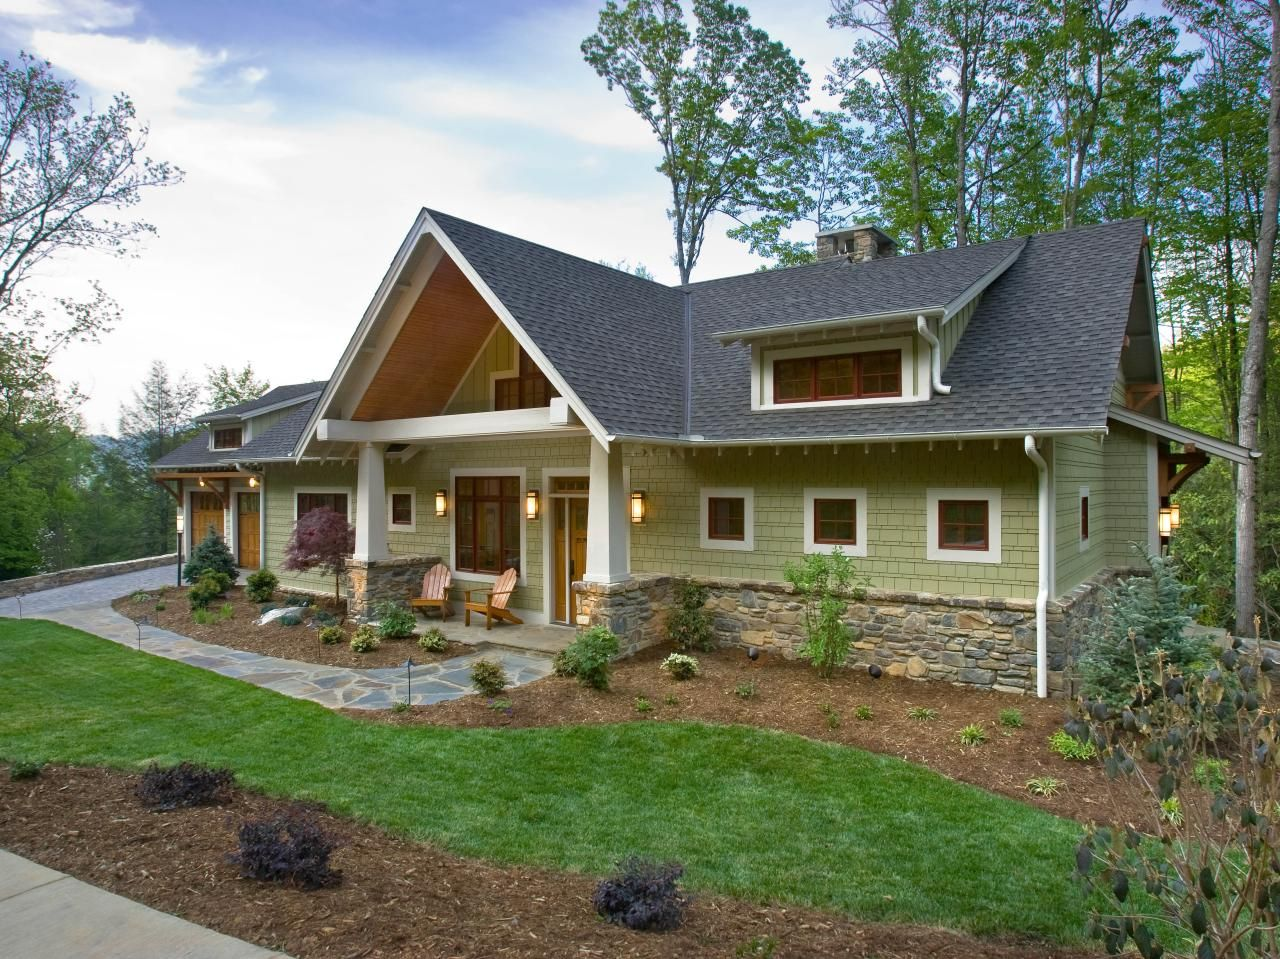 Craftsman exterior house paint ideas - Often Referred To As A Bungalow Style Home Craftsman Designs And Layouts Typically Make